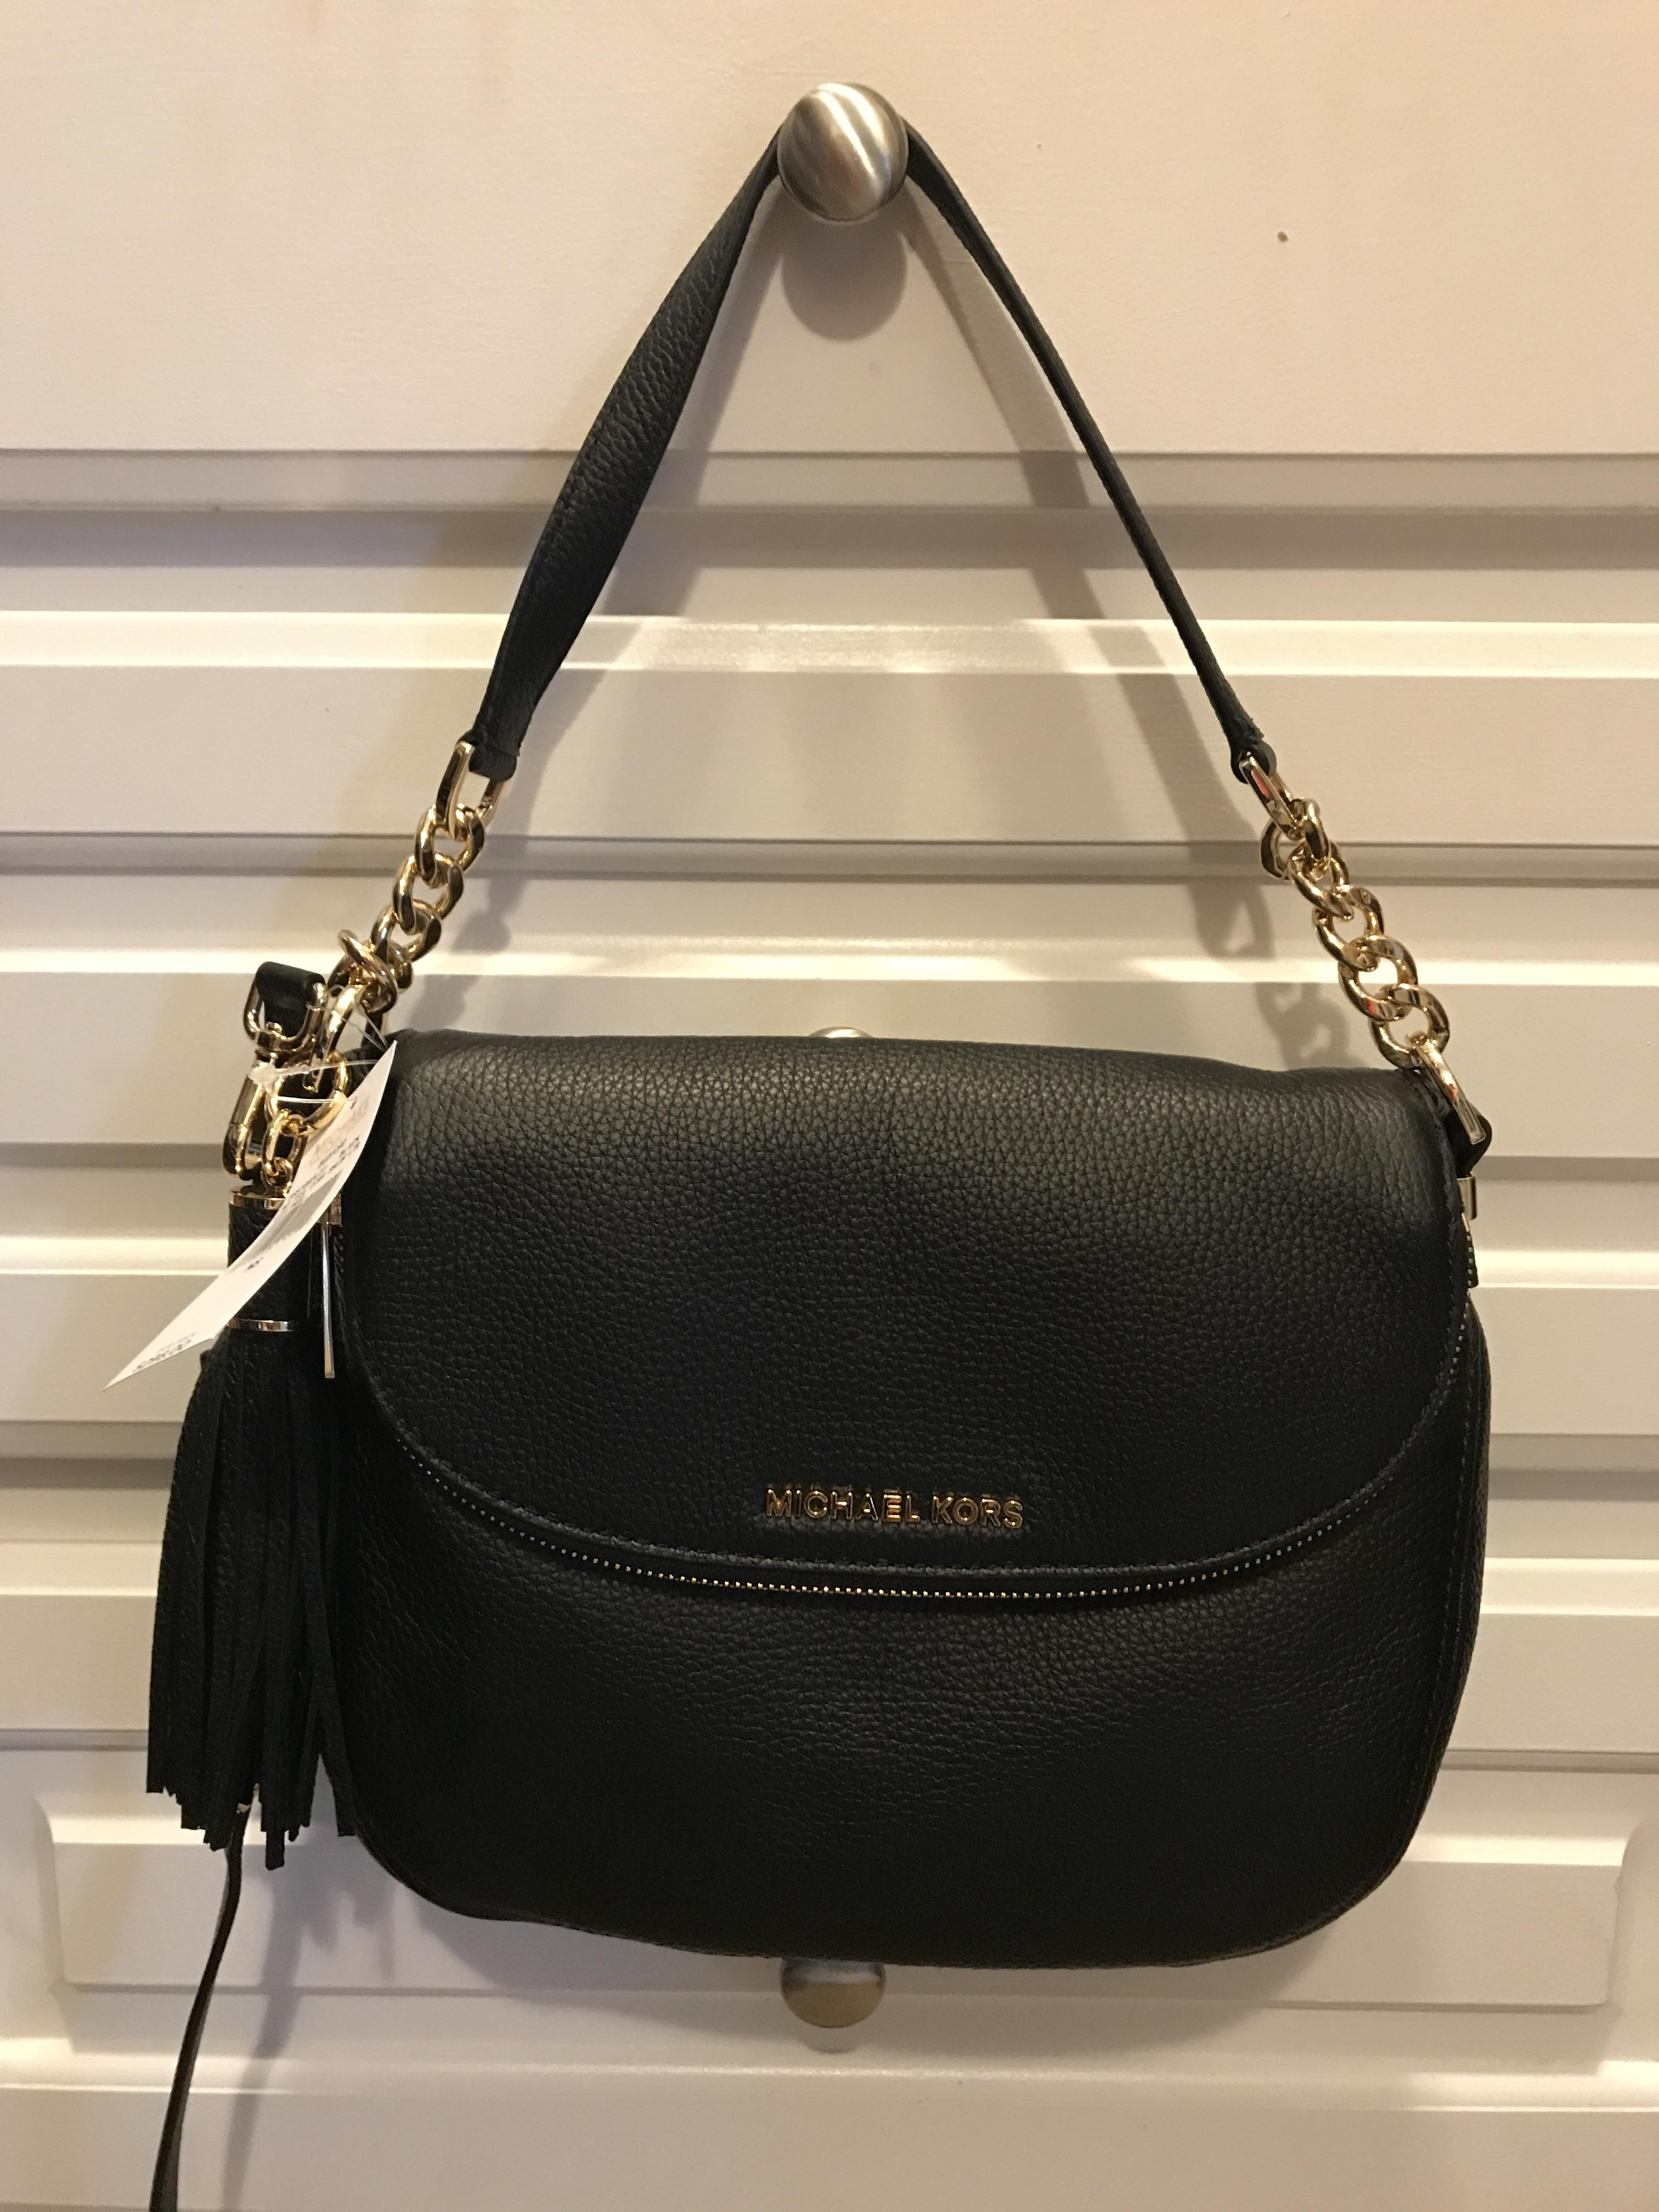 d76a0b9bedf5 ... canada michael kors bedford medium navy leather convertible tassel  888235202716 30h3gwsl6l cross body bag 87cb7 f21c2